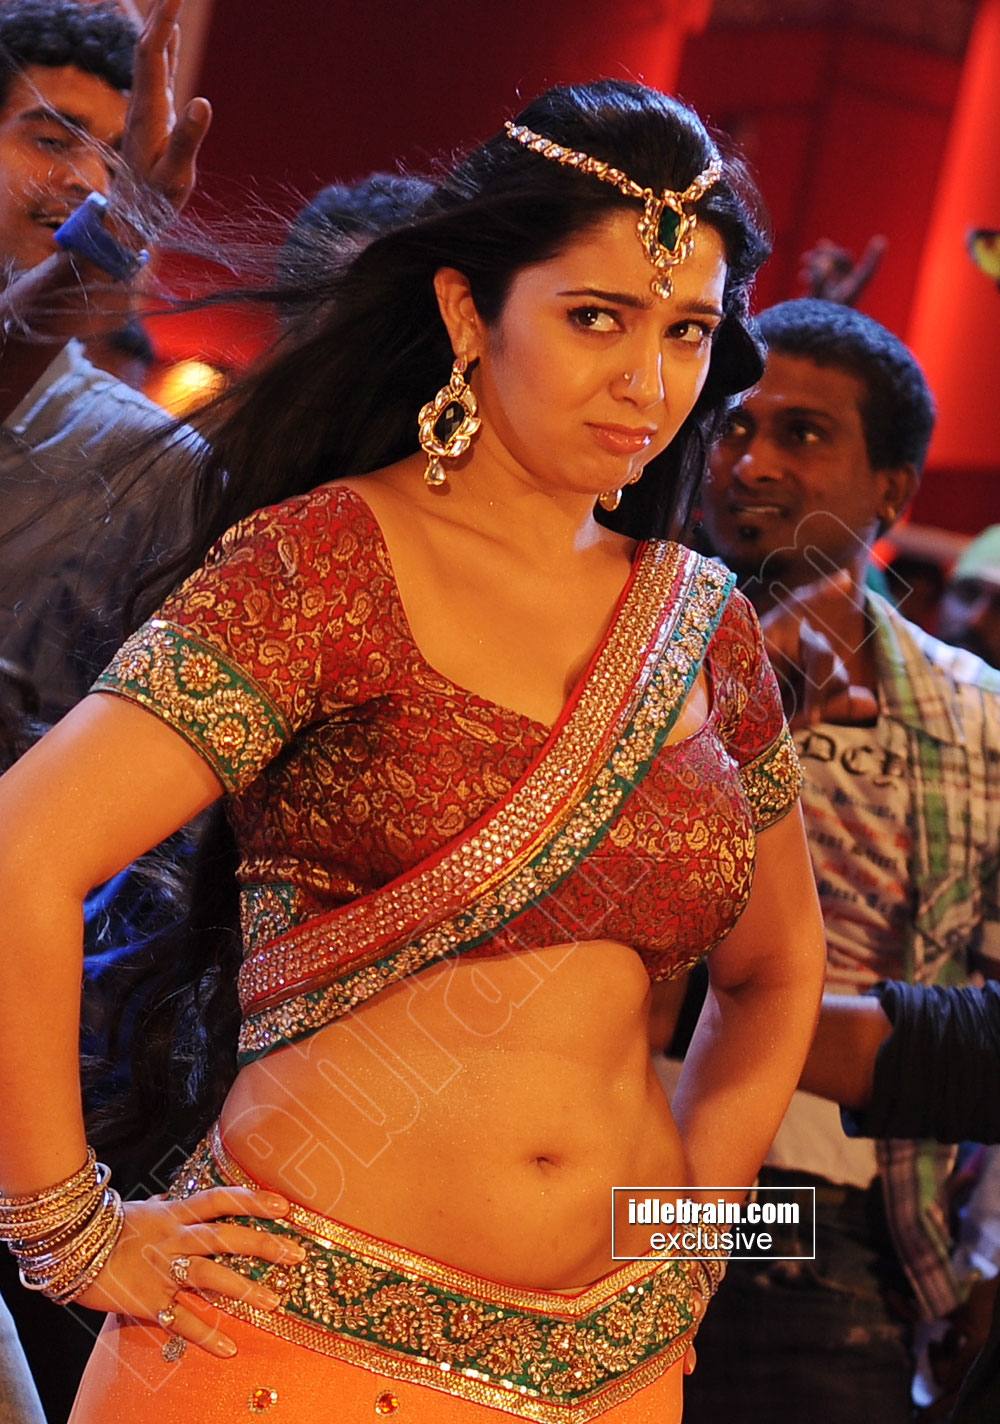 charmi navel photos